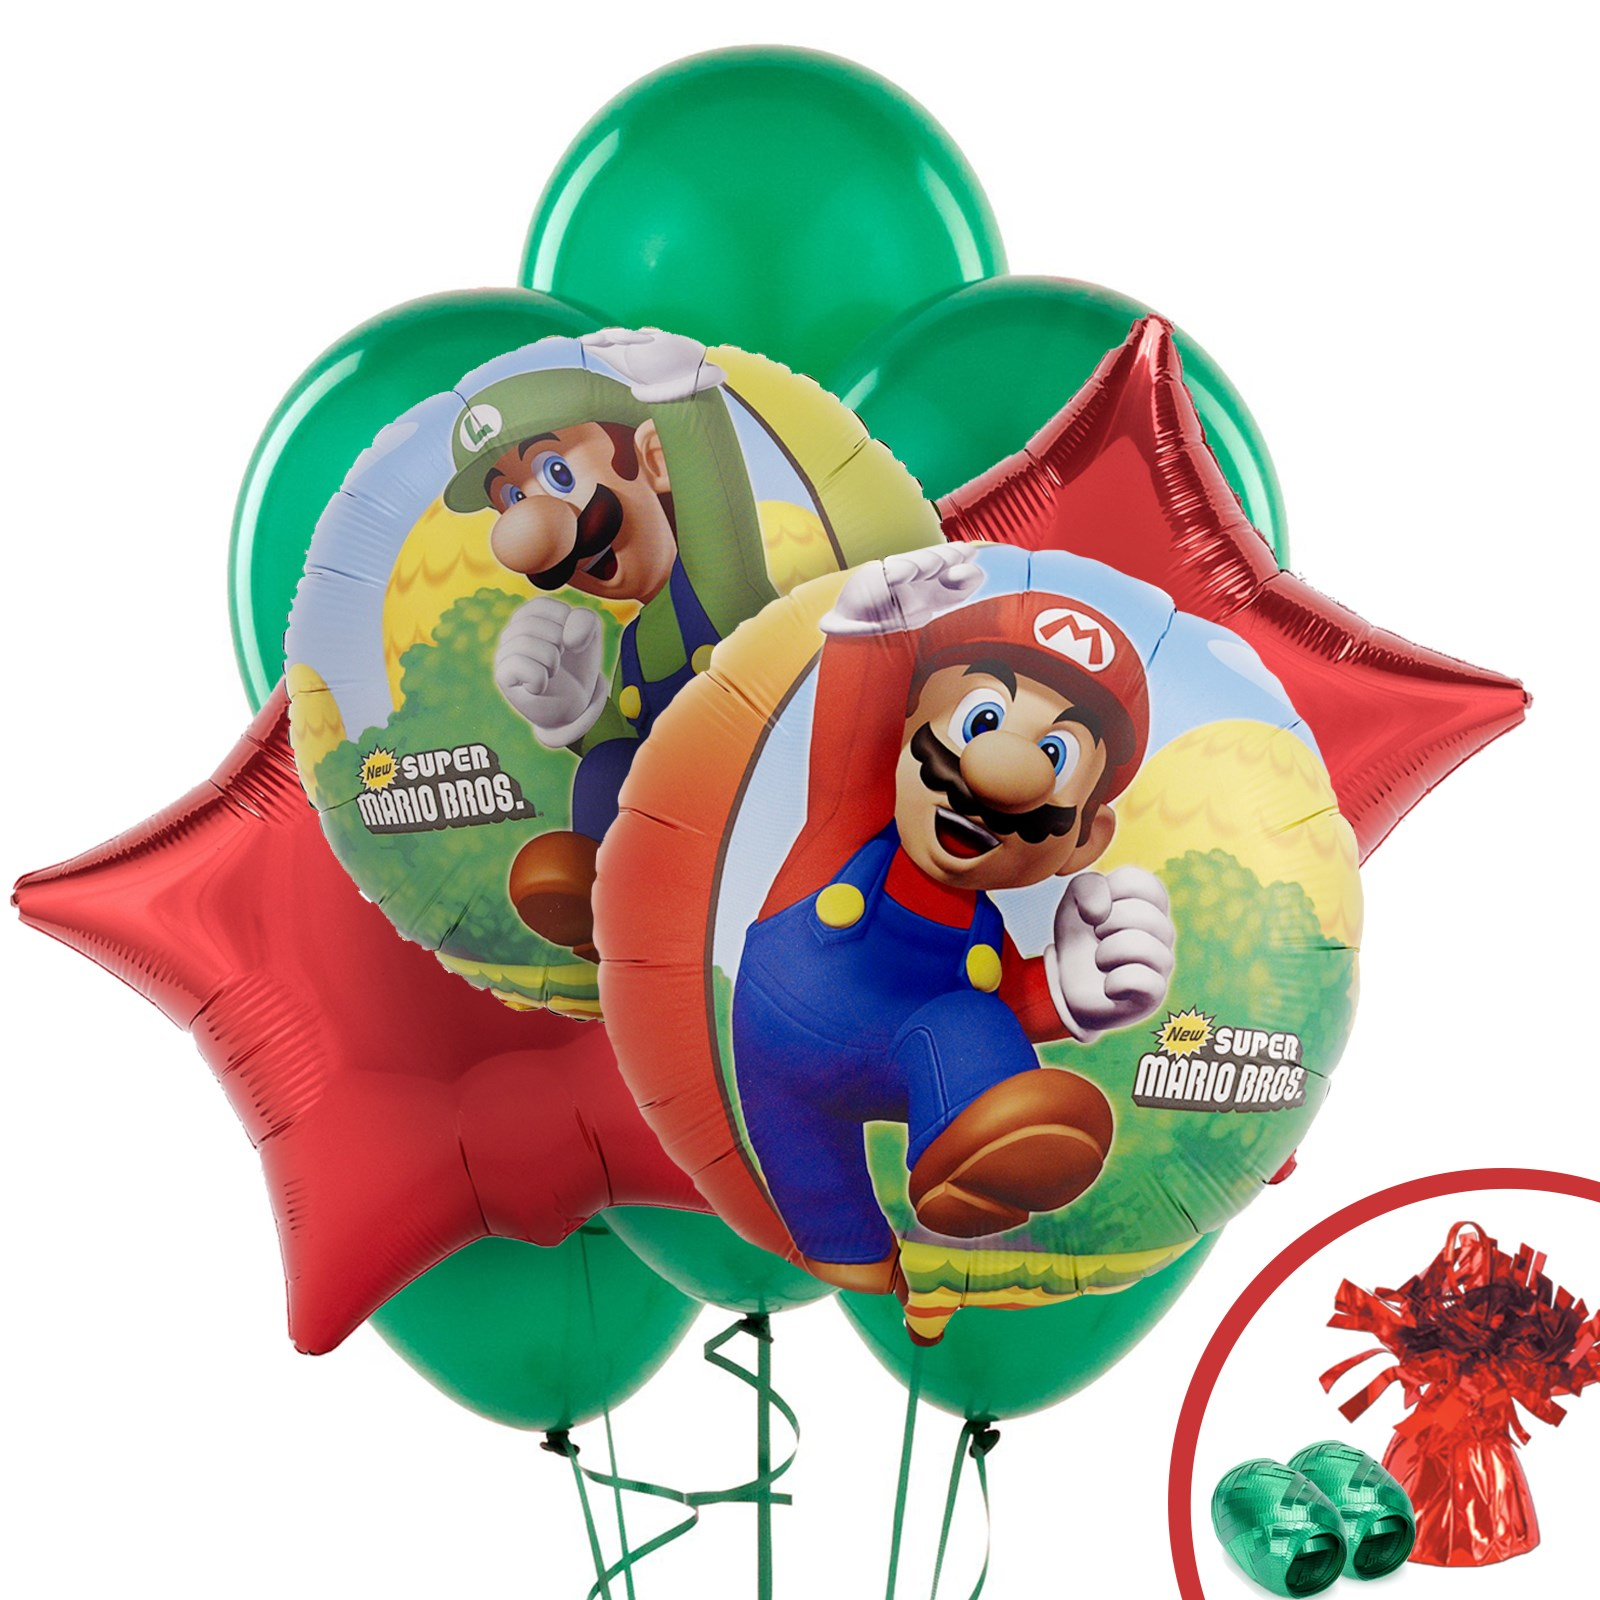 Super mario party supplies birthdayexpress super mario bros balloon bouquet monicamarmolfo Gallery